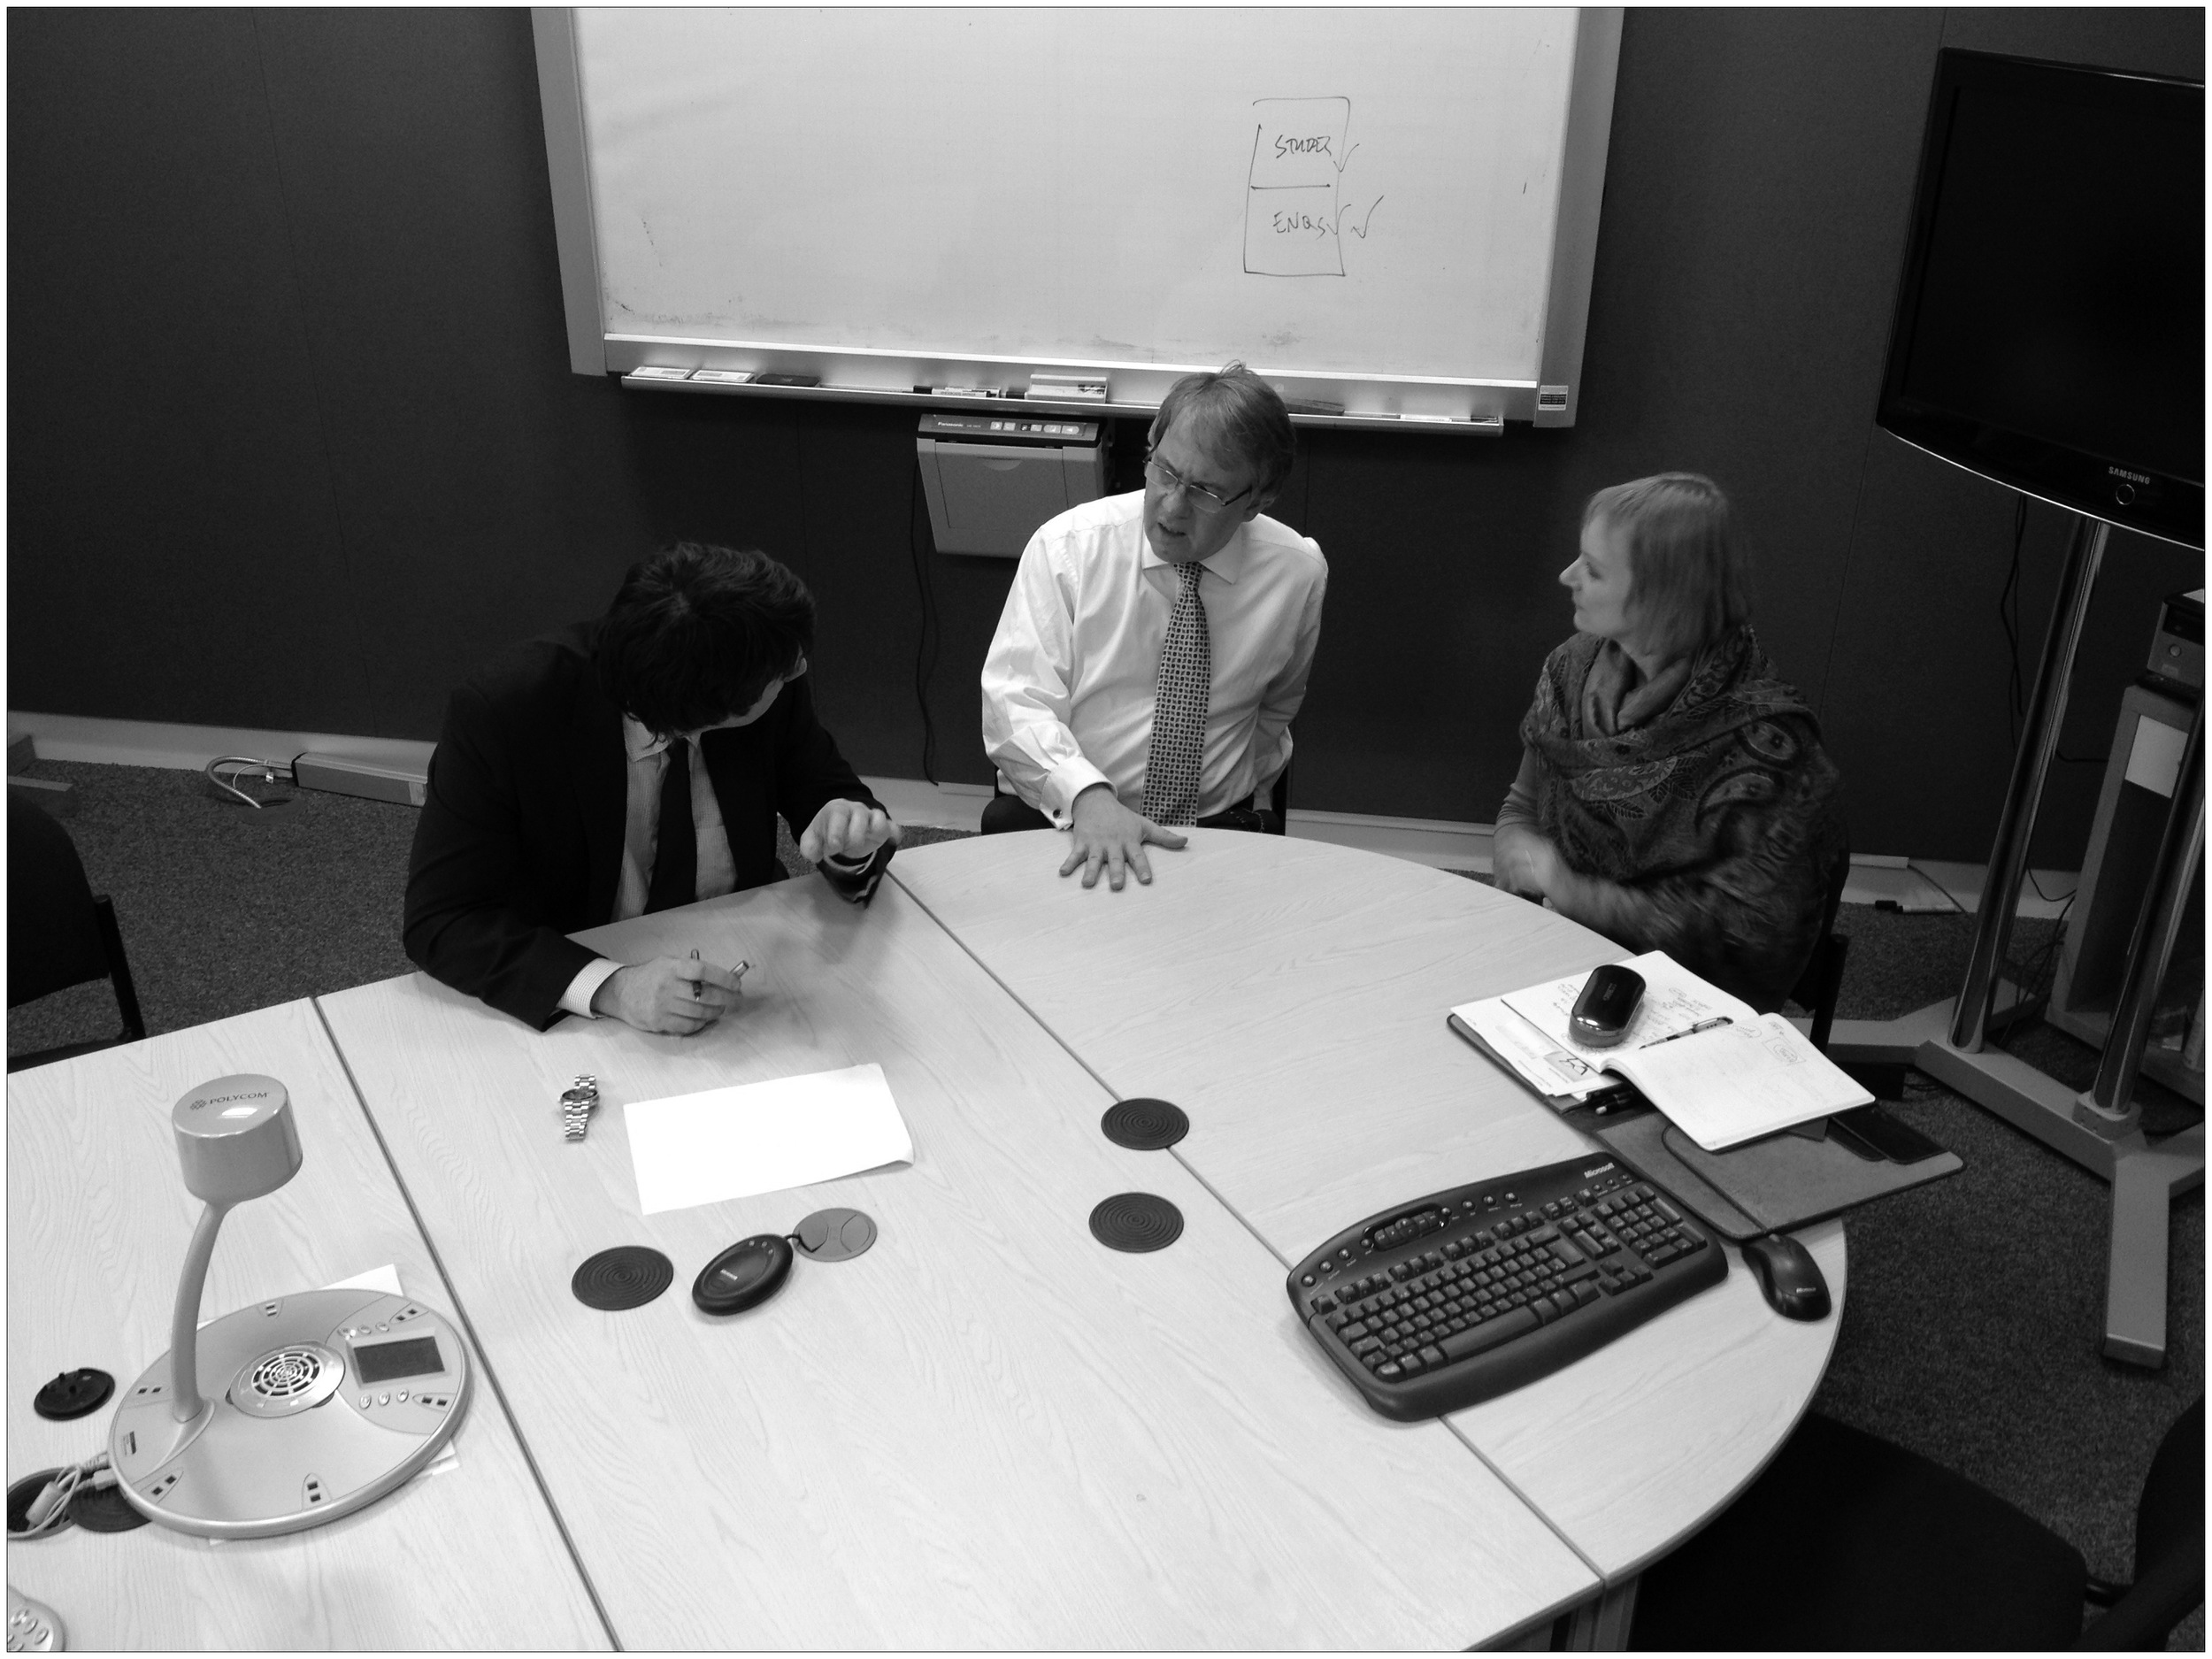 """Photo credit: The Open University, """" Ian Roddis, Lucian Hudson and Ginny Broad ,"""" Flickr,  CC BY-NC-ND 2.0 license ."""